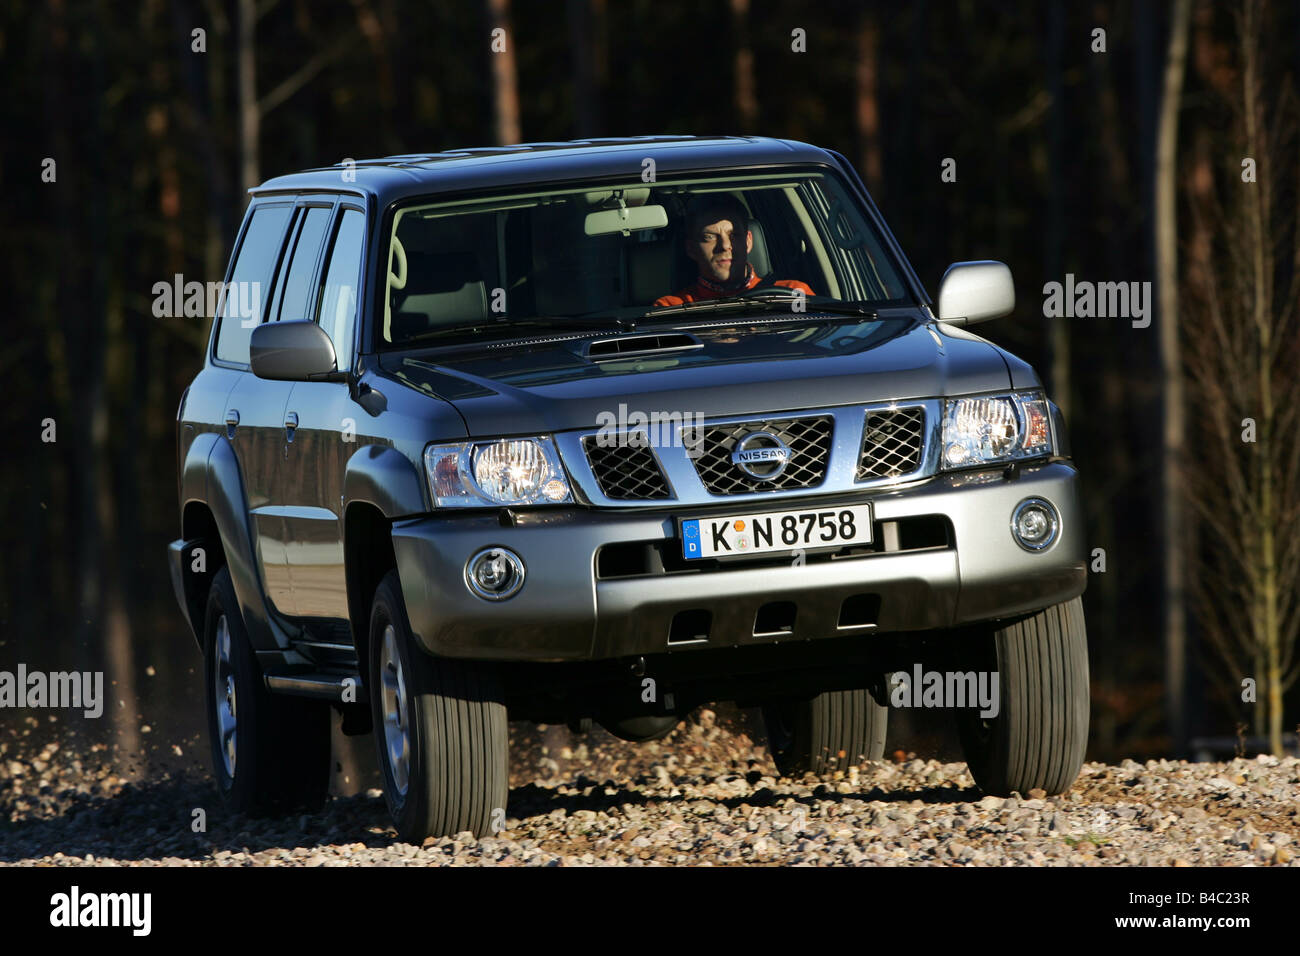 car, nissan patrol gr 3.0 di, cross country vehicle, model year